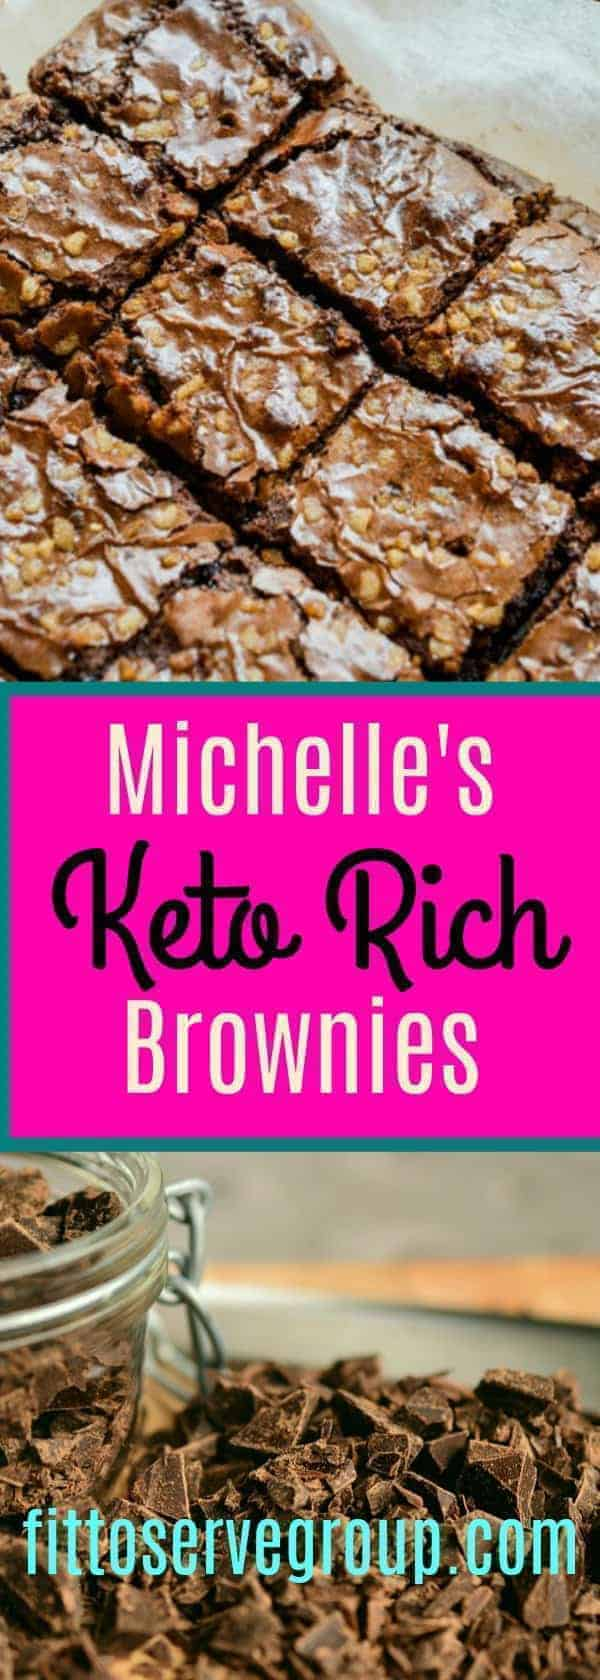 Michelle's Keto Rich Brownies, the most decadent keto brownie you will ever have.